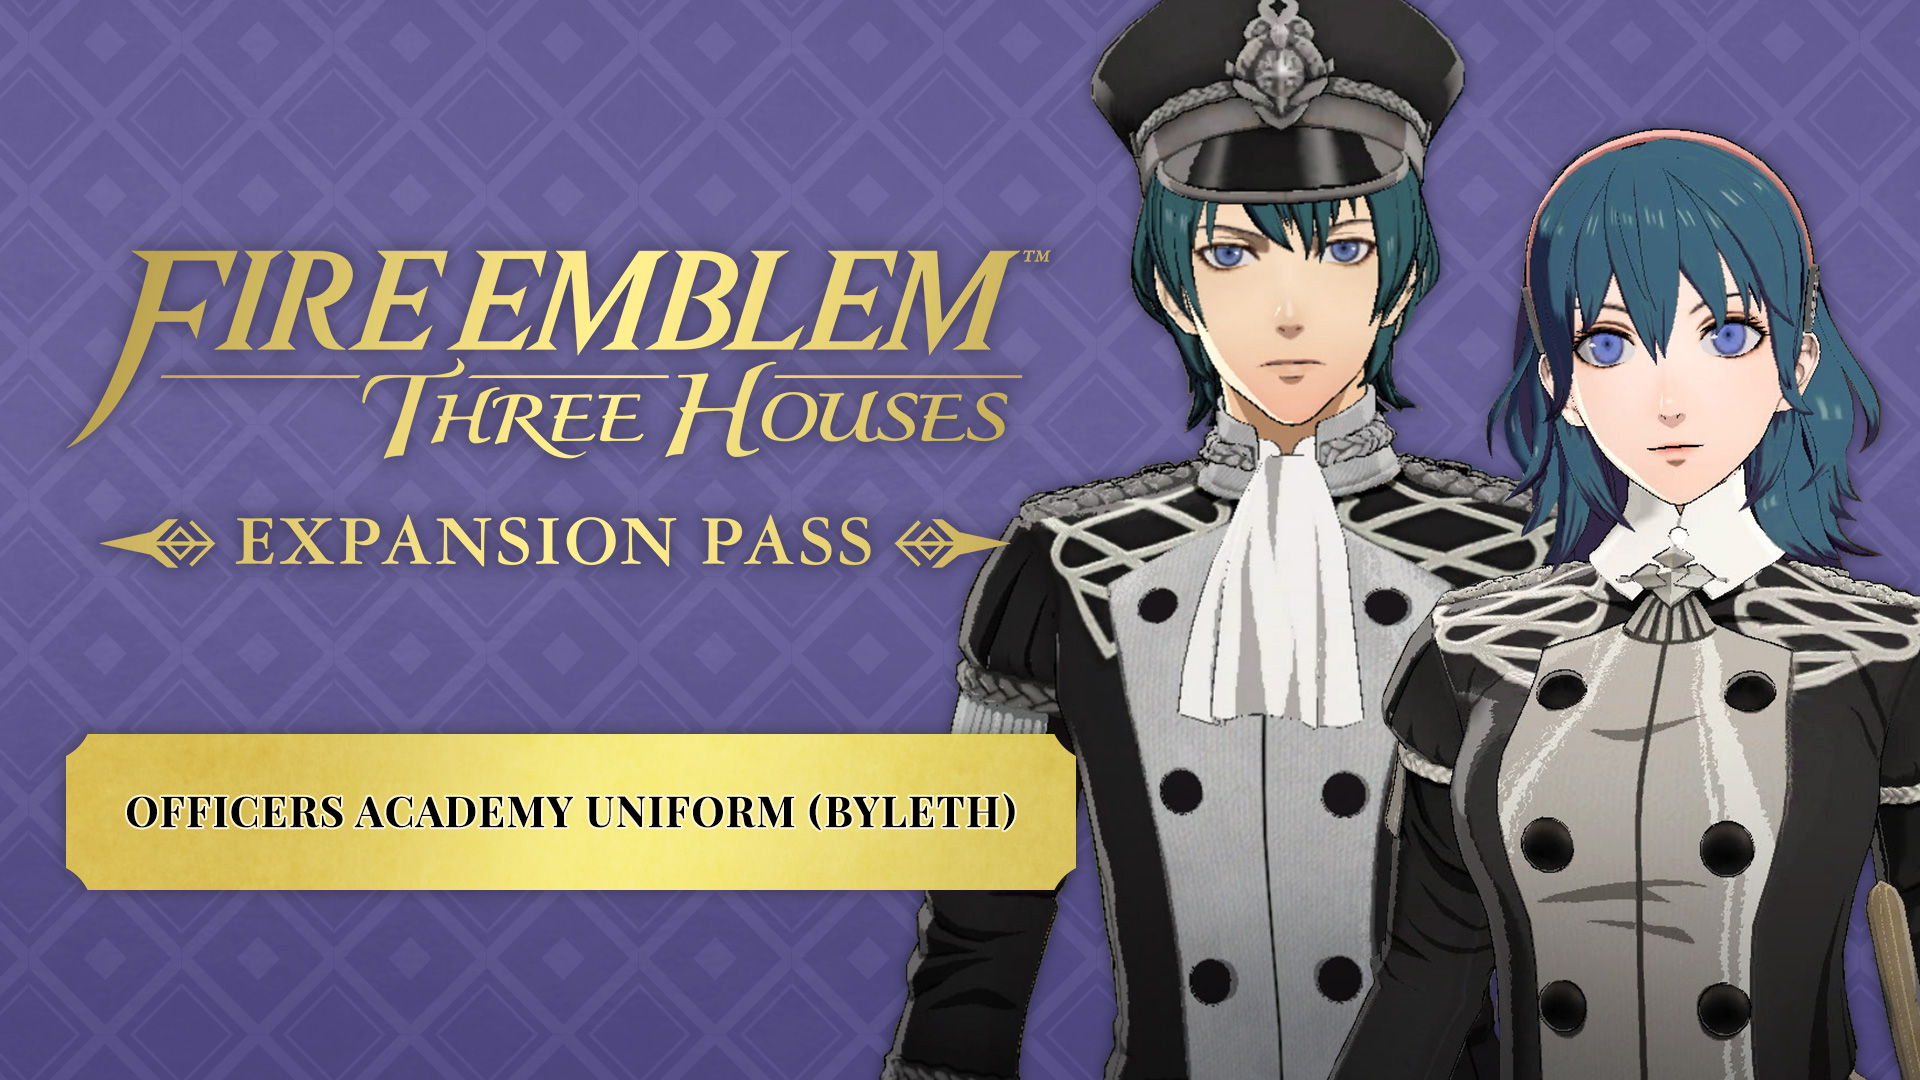 Officers Academy Uniform (Byleth)